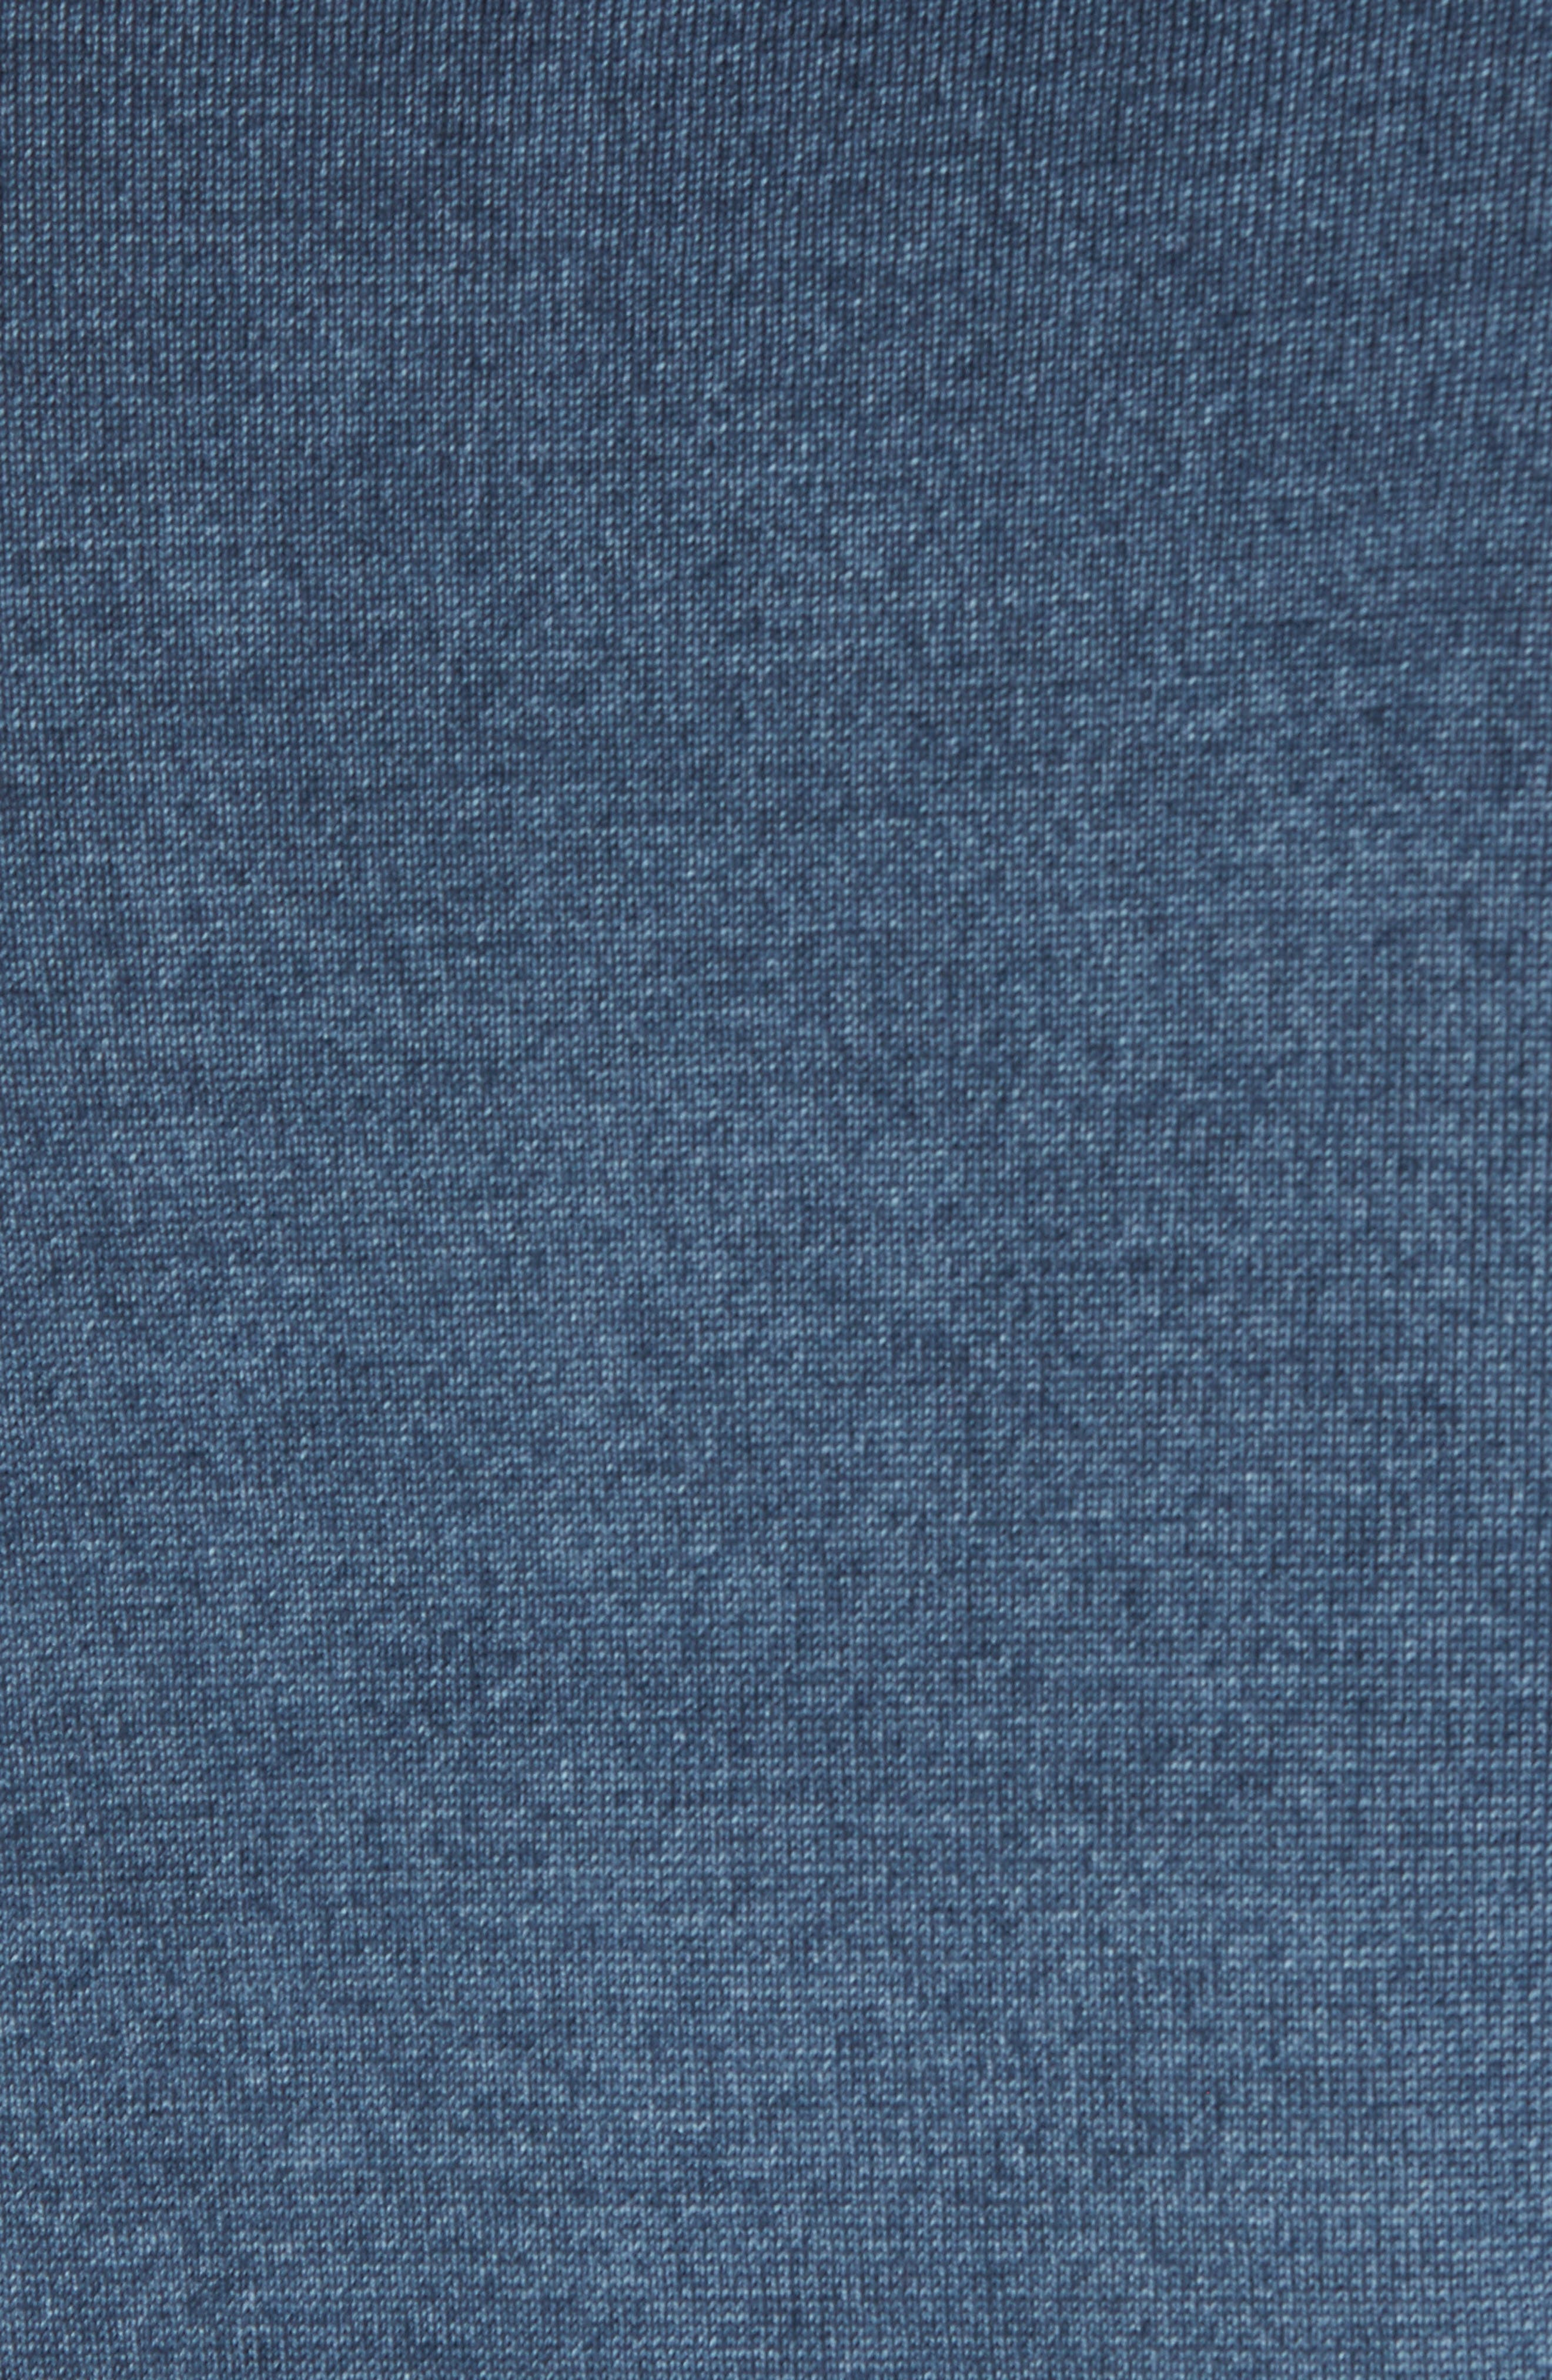 Lucky Trim Fit Wool Sweater,                             Alternate thumbnail 5, color,                             Mid Blue